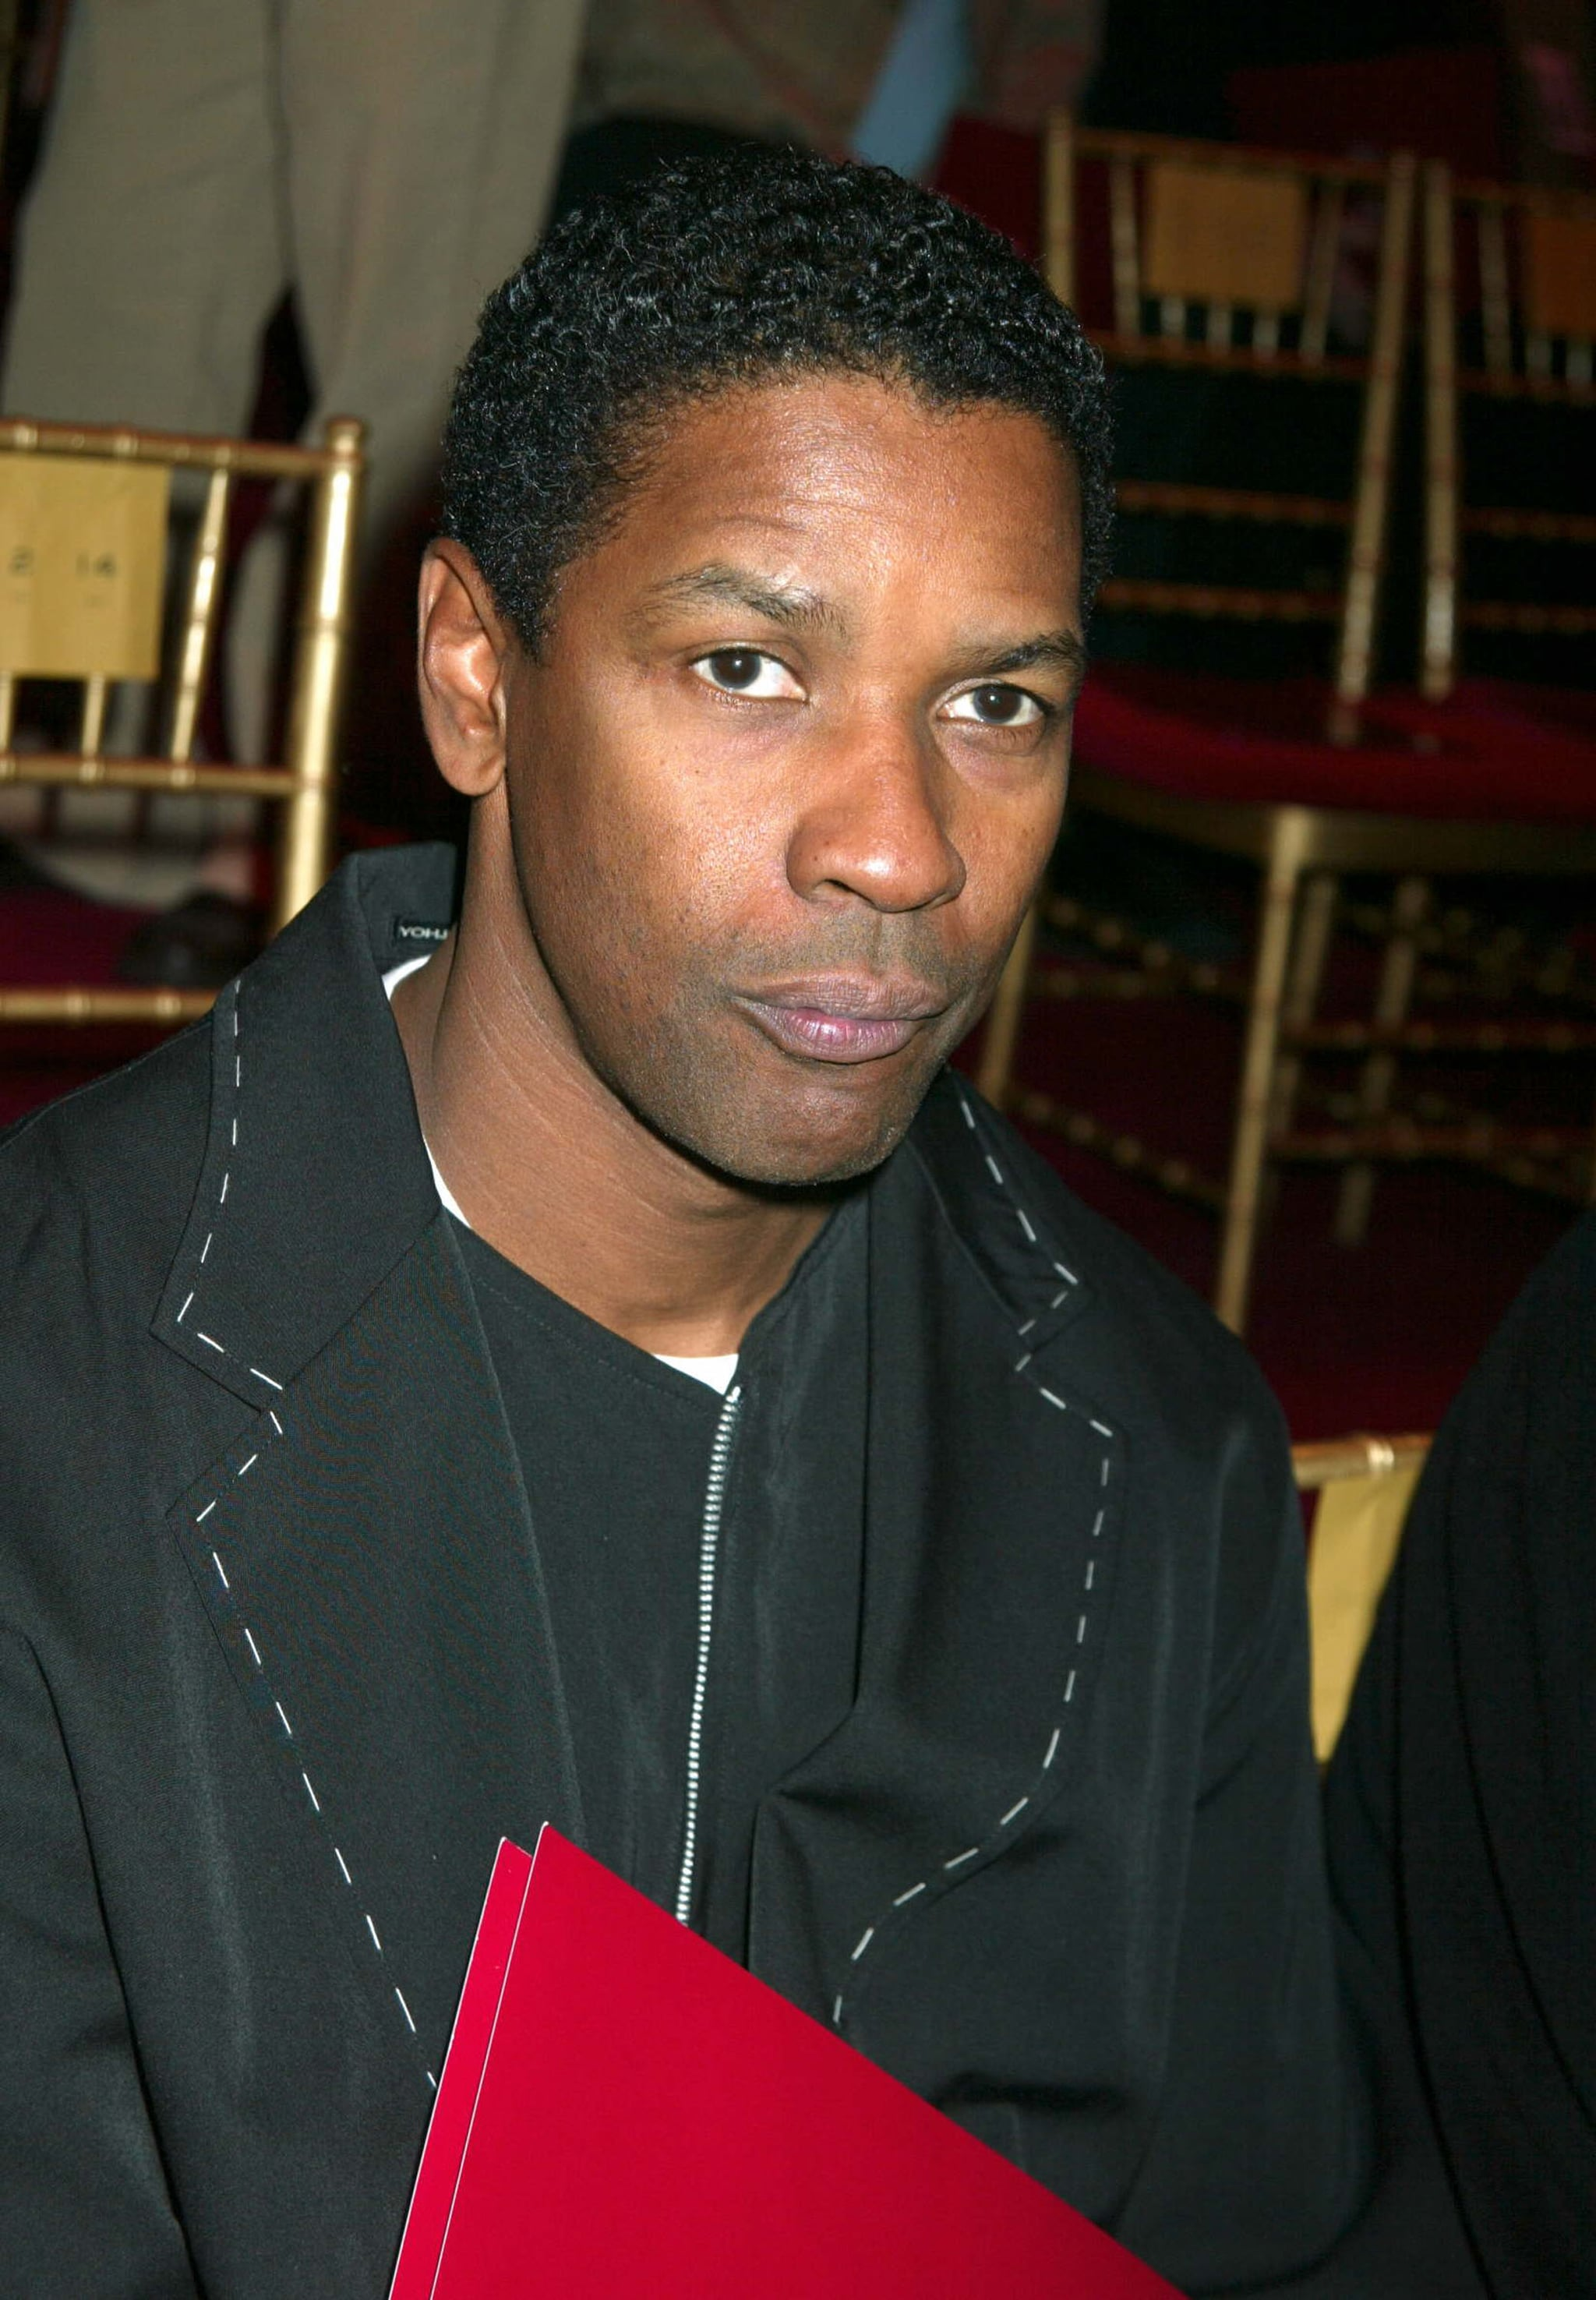 Denzel Washington sat happily in the front row in 2003.